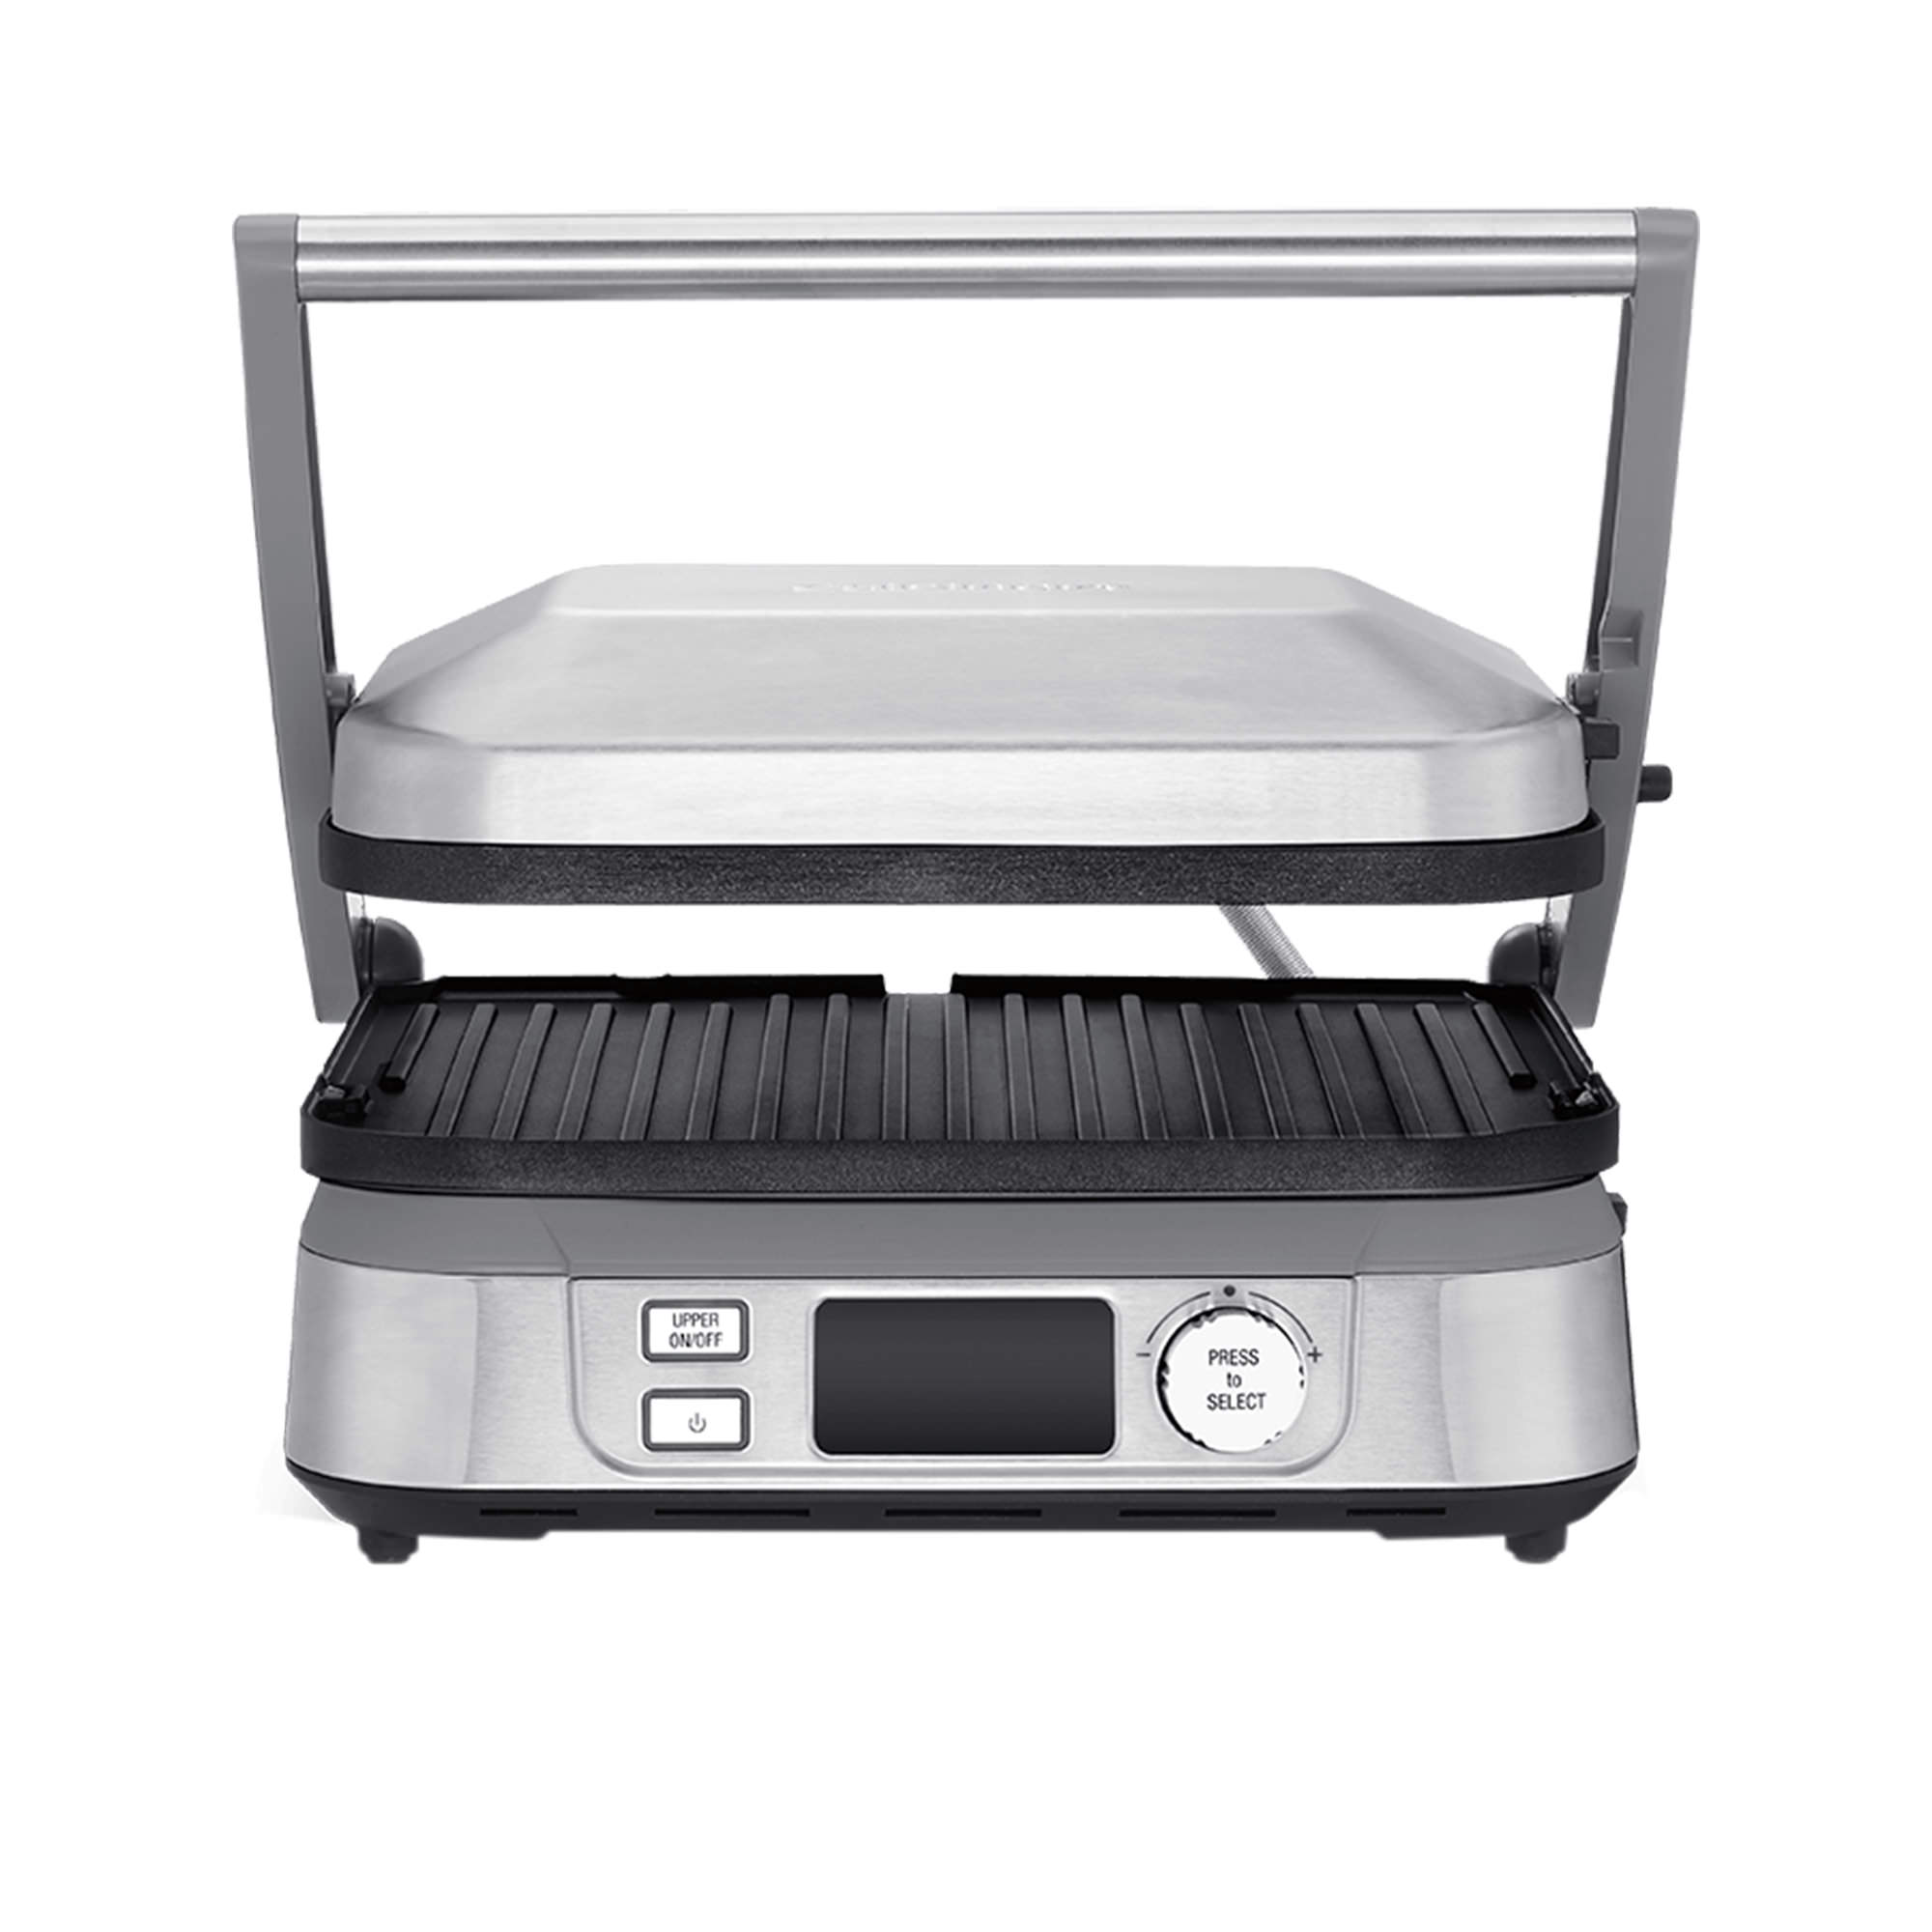 Cuisinart Griddler & Deep Pan Stainless Steel